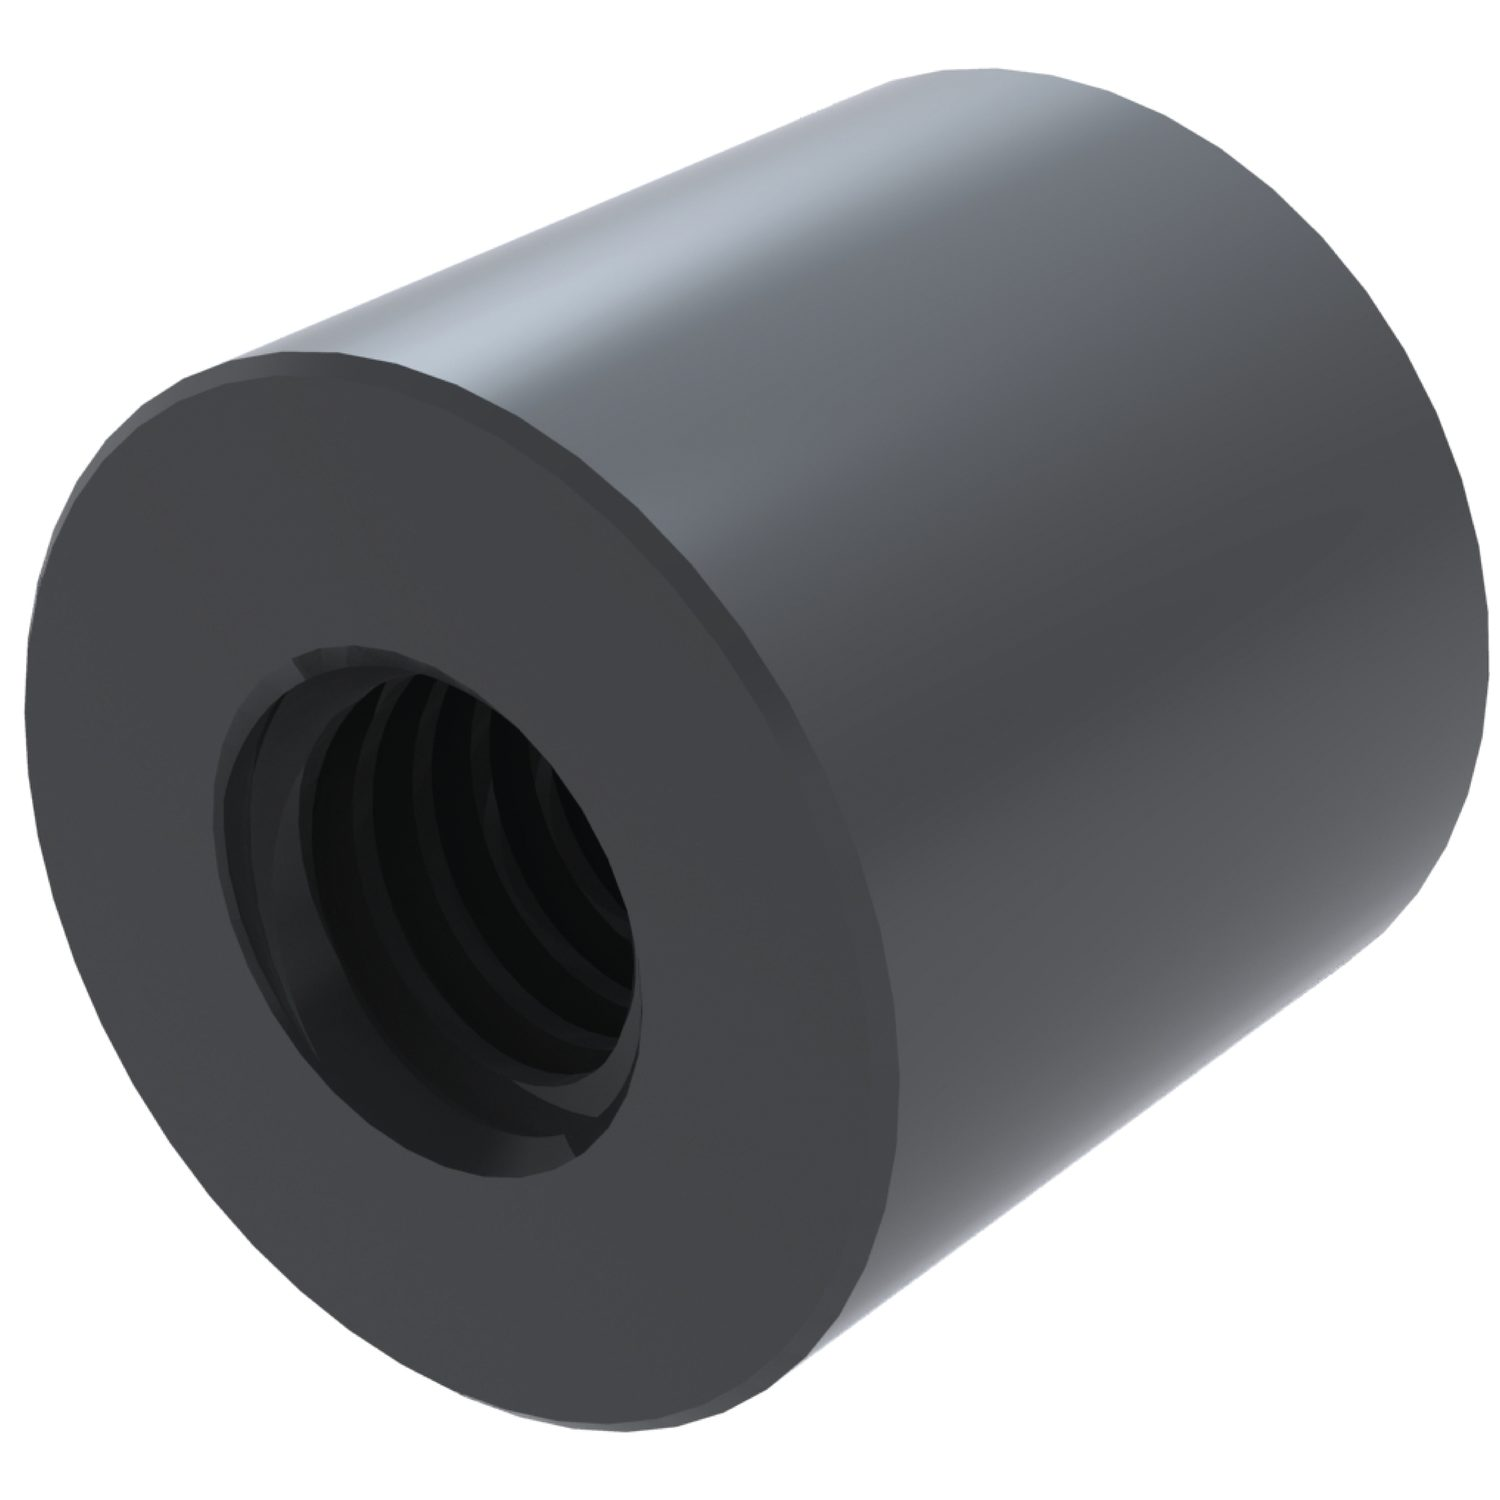 L1343 - Cylindrical Nylon Nuts